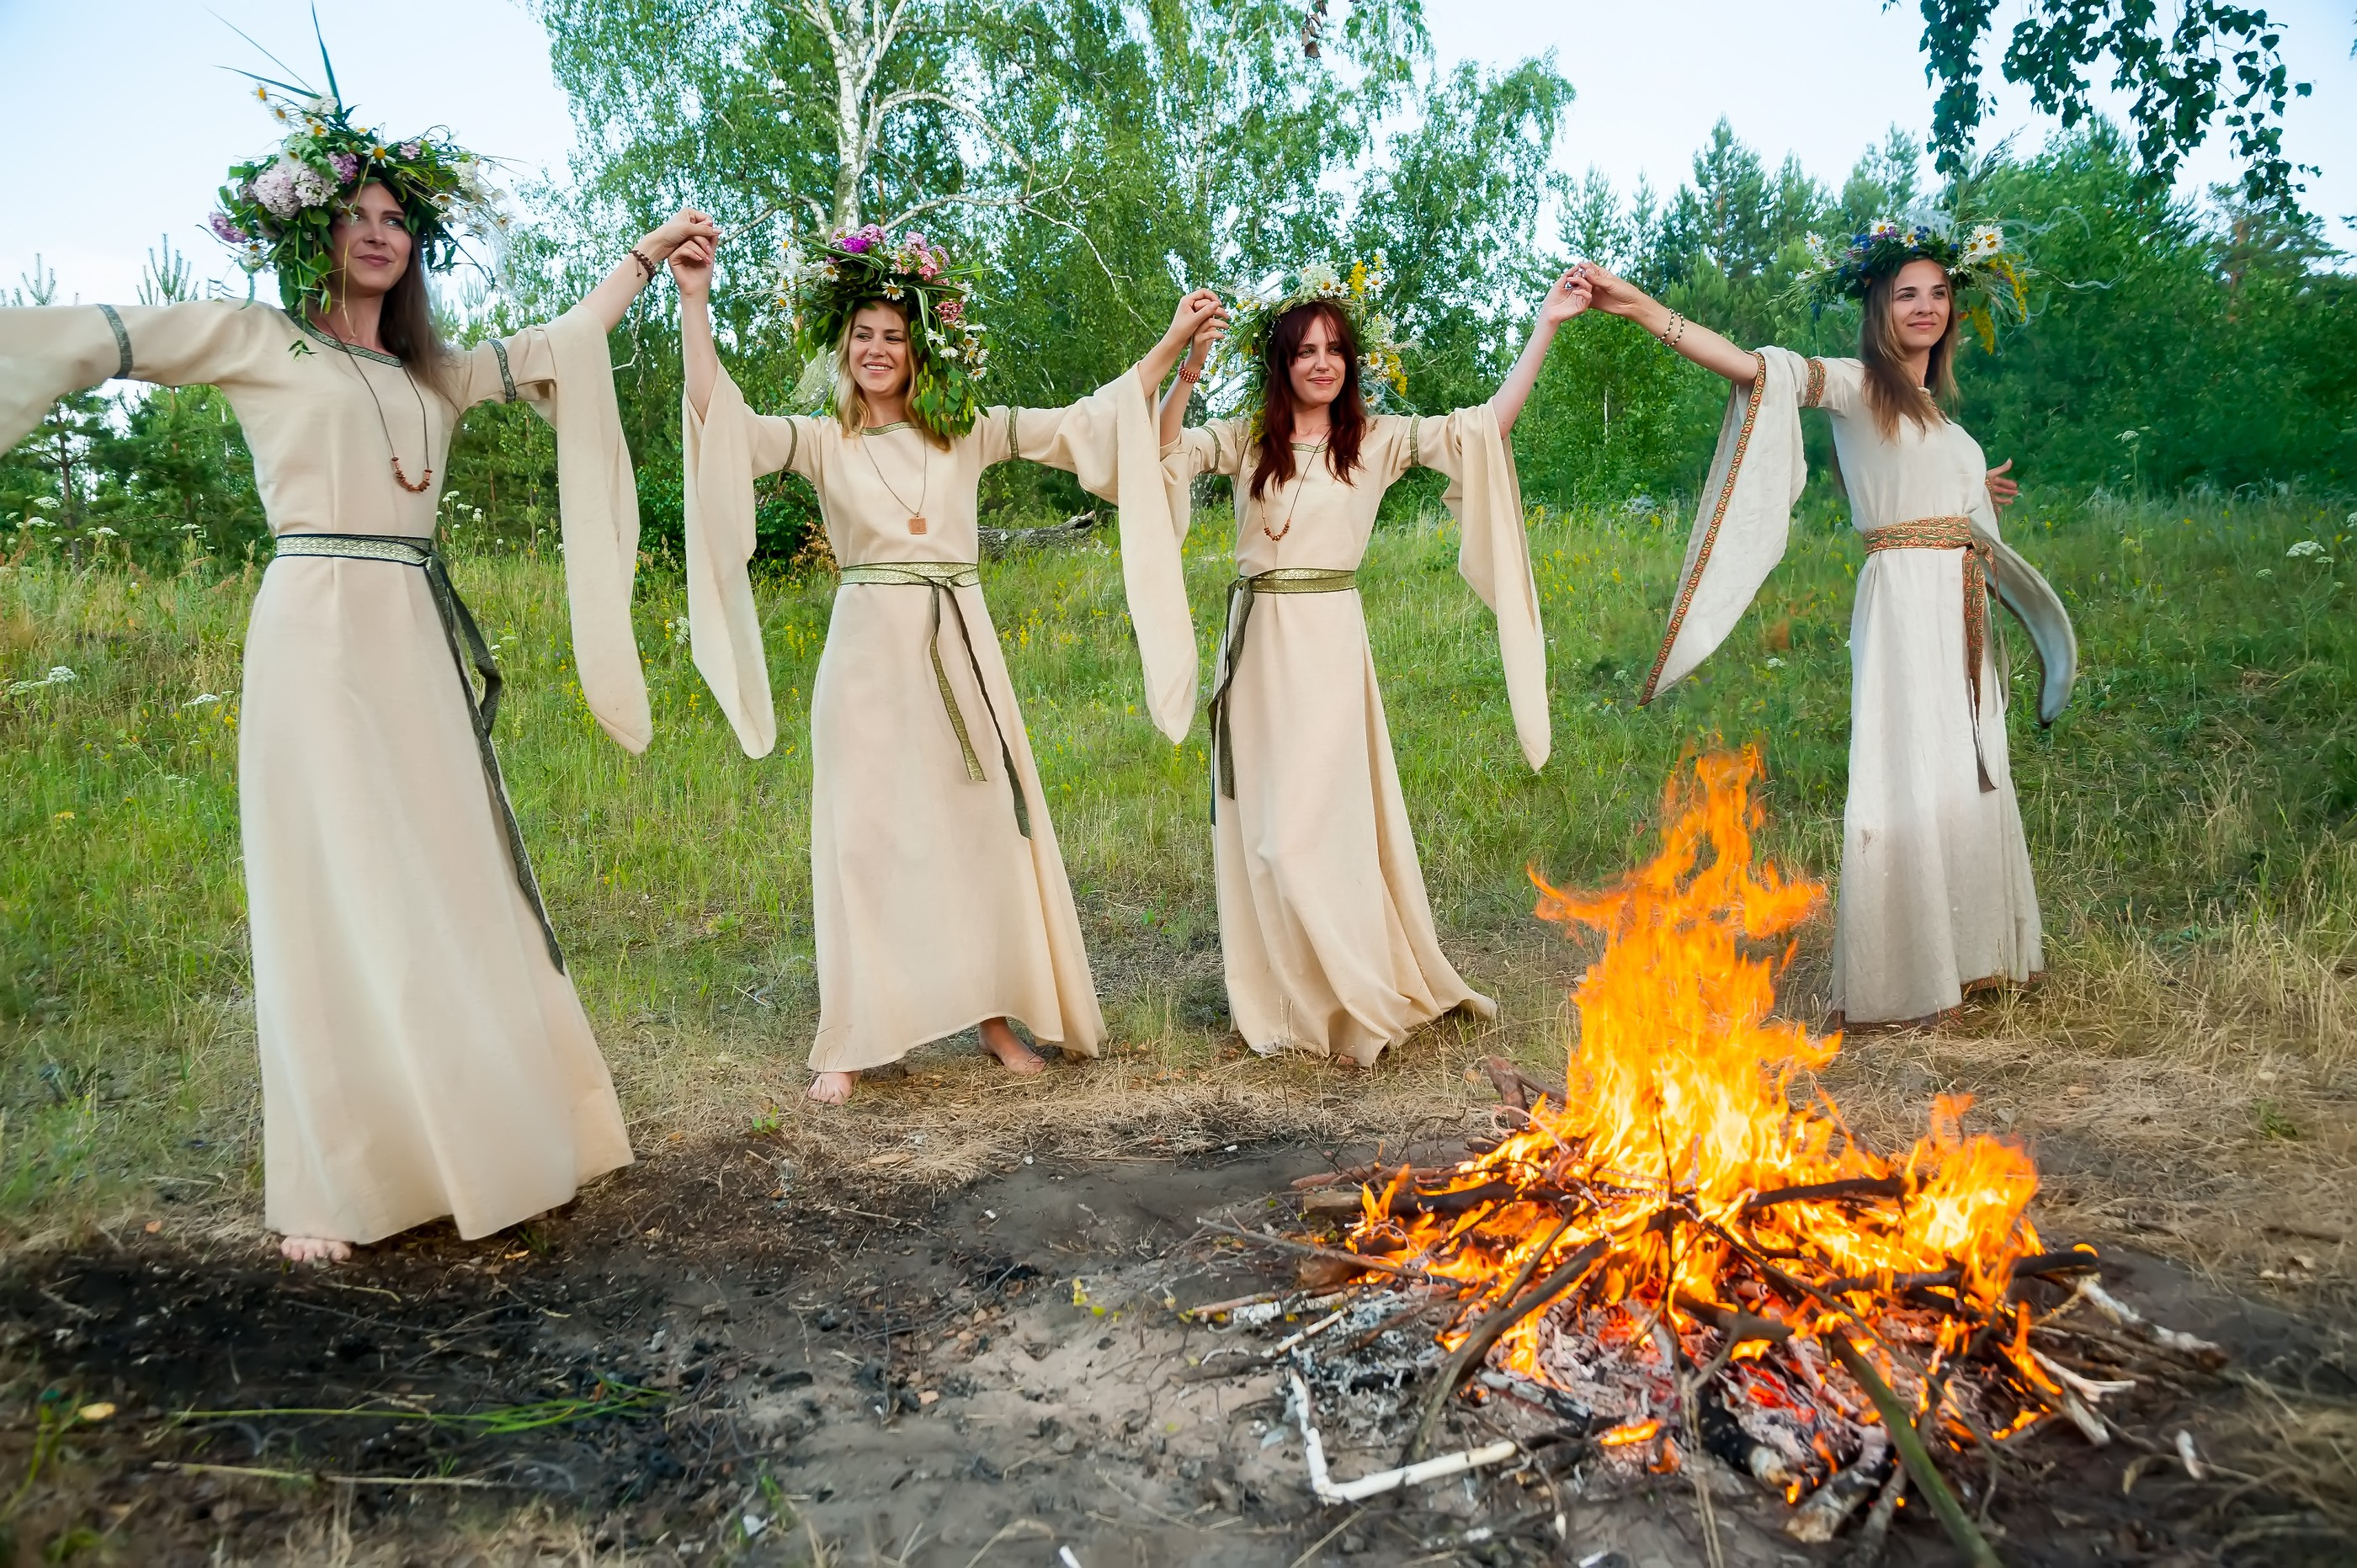 women dancing in white dresses in the forest around a bonfire like the women of tu bav who were dancing in the vineyard to look for a husband in tu bav